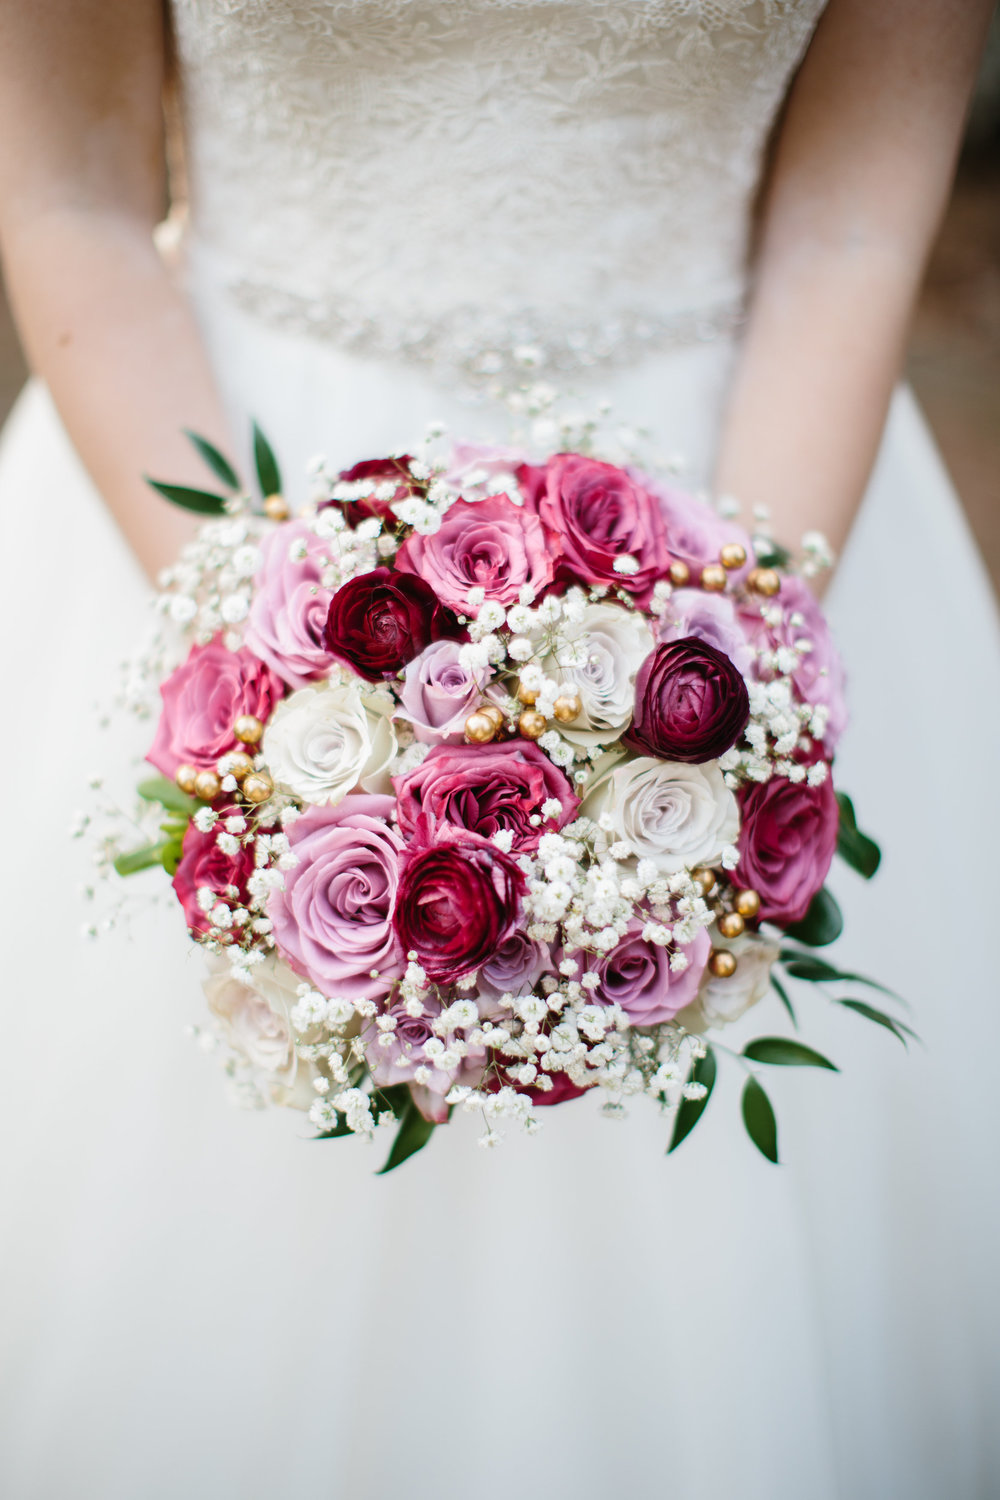 Vancouver Bridal bouquet by Floral Design by Lili, Lower Mainland Florsit, British Columbia. Image by Laura anne Jensen